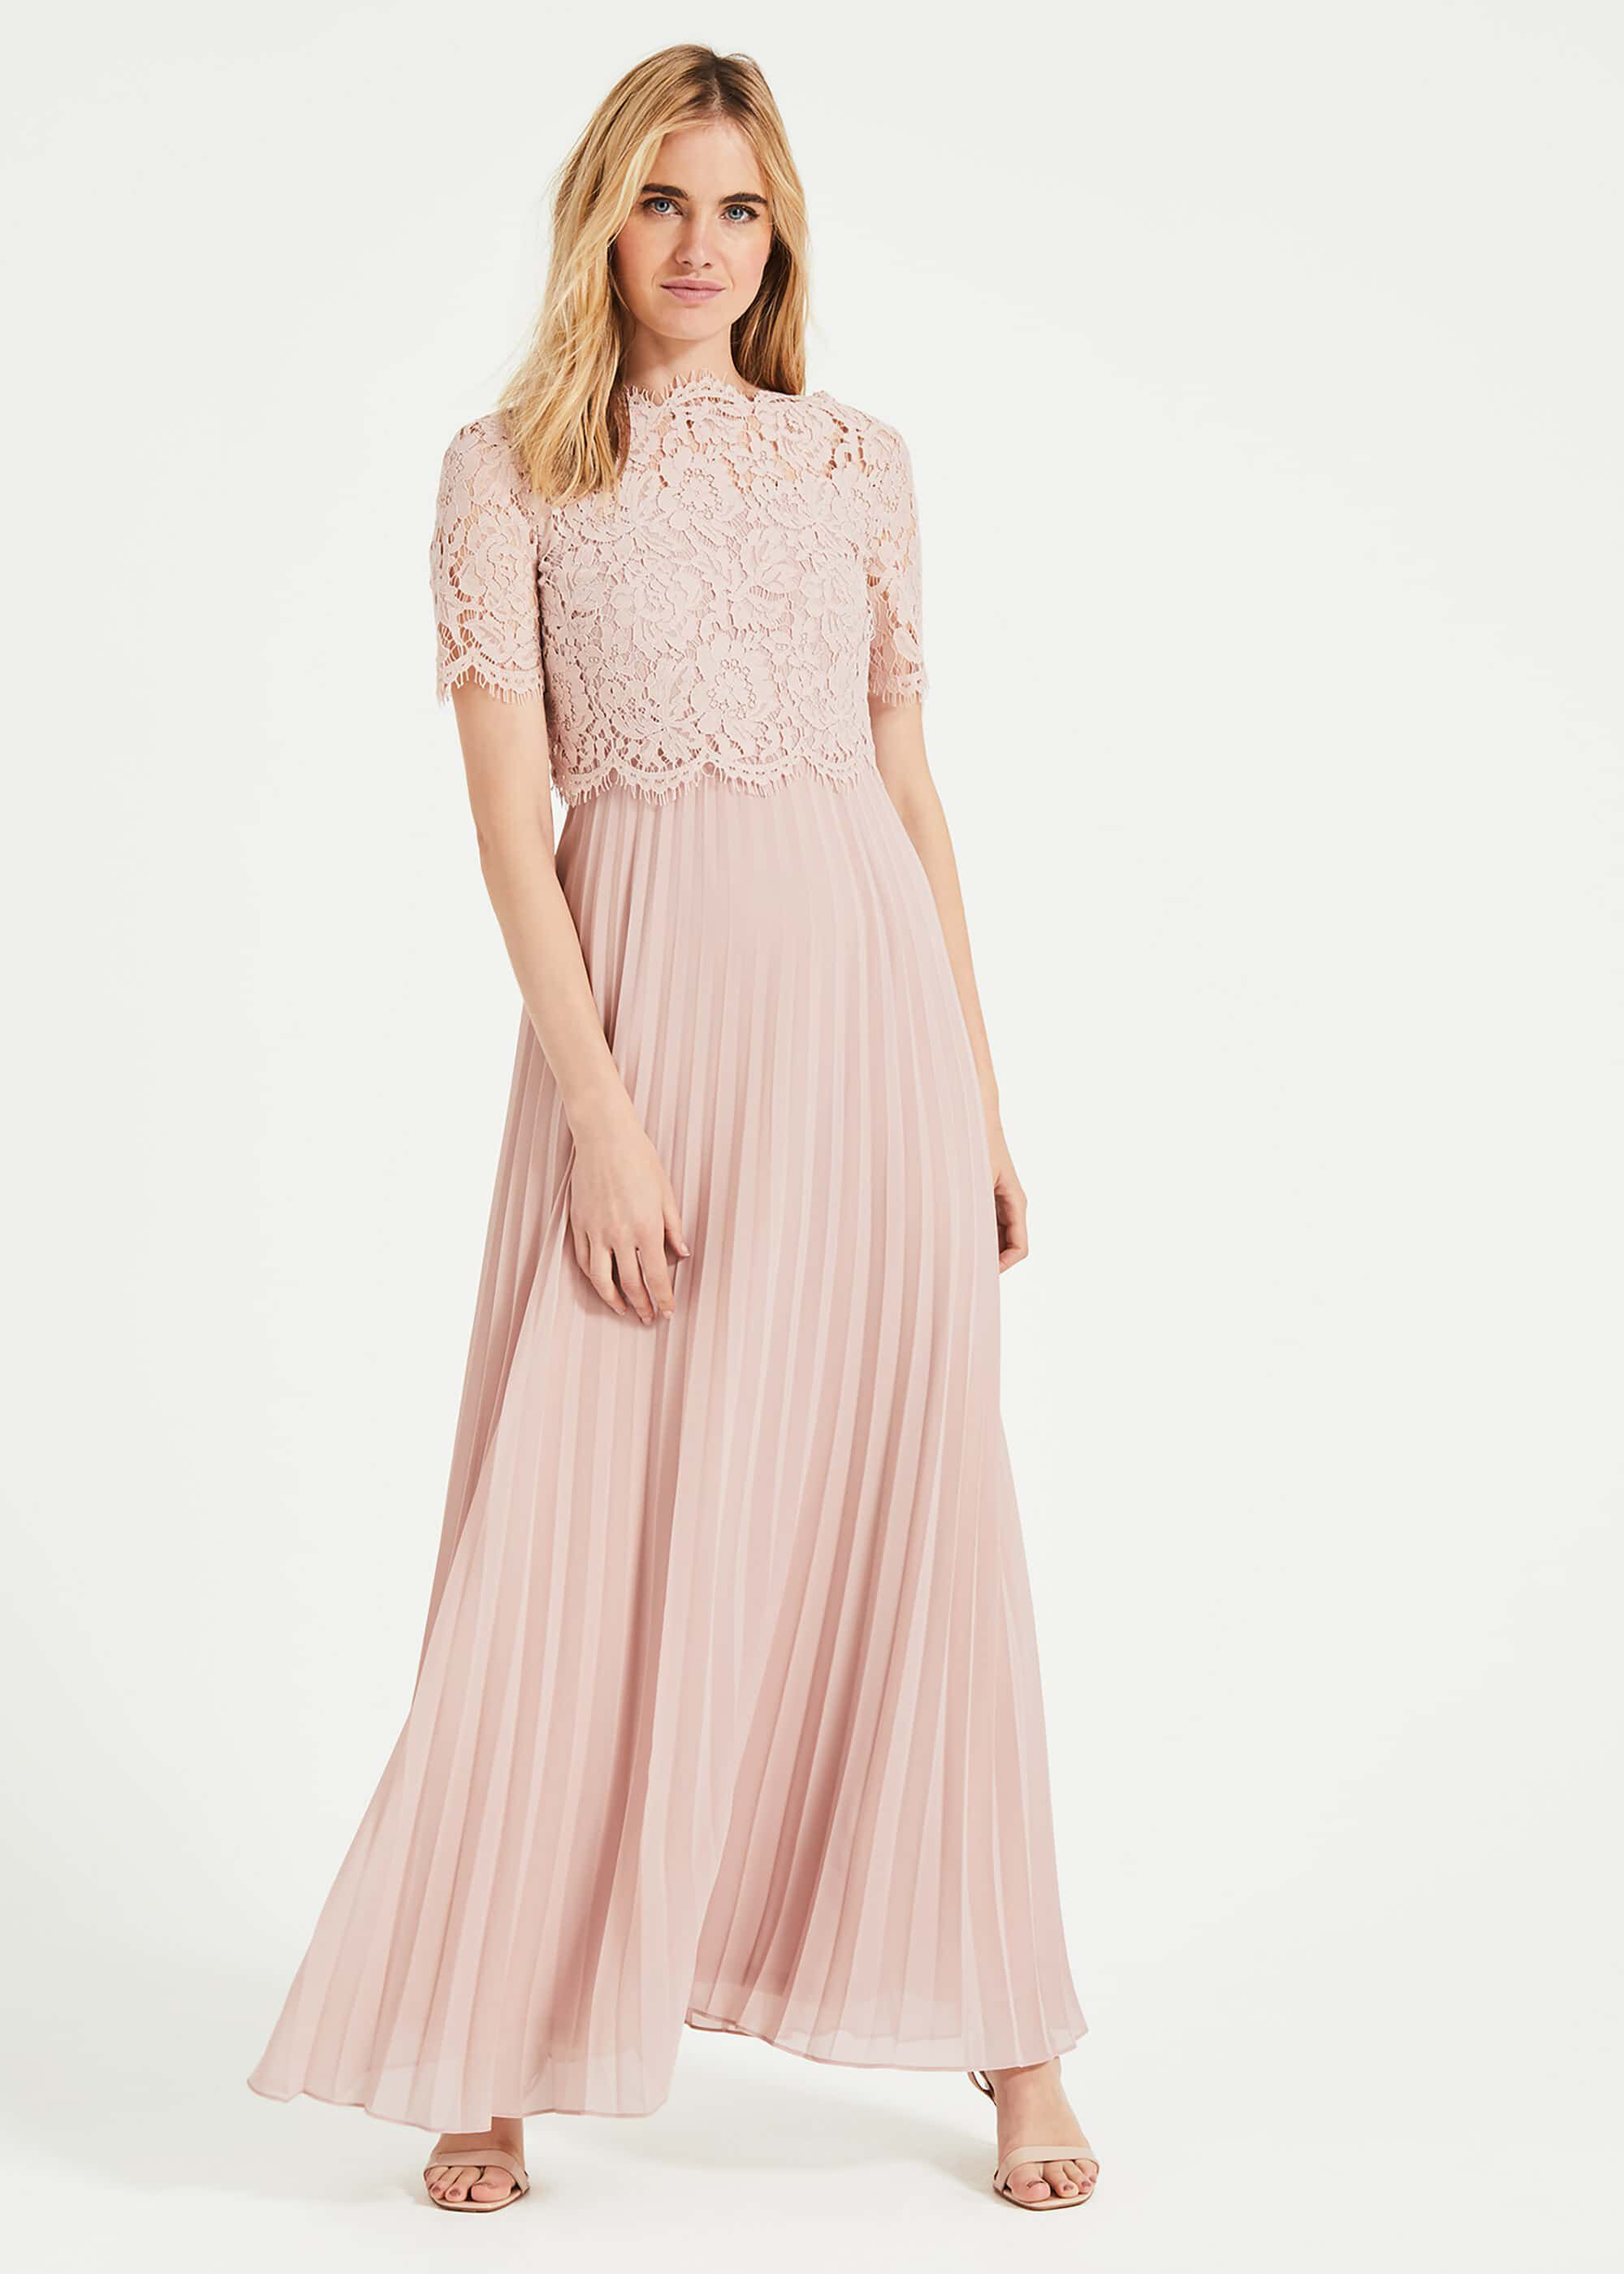 Phase Eight Elisabetta Lace Pleated Dress, Pink, Maxi